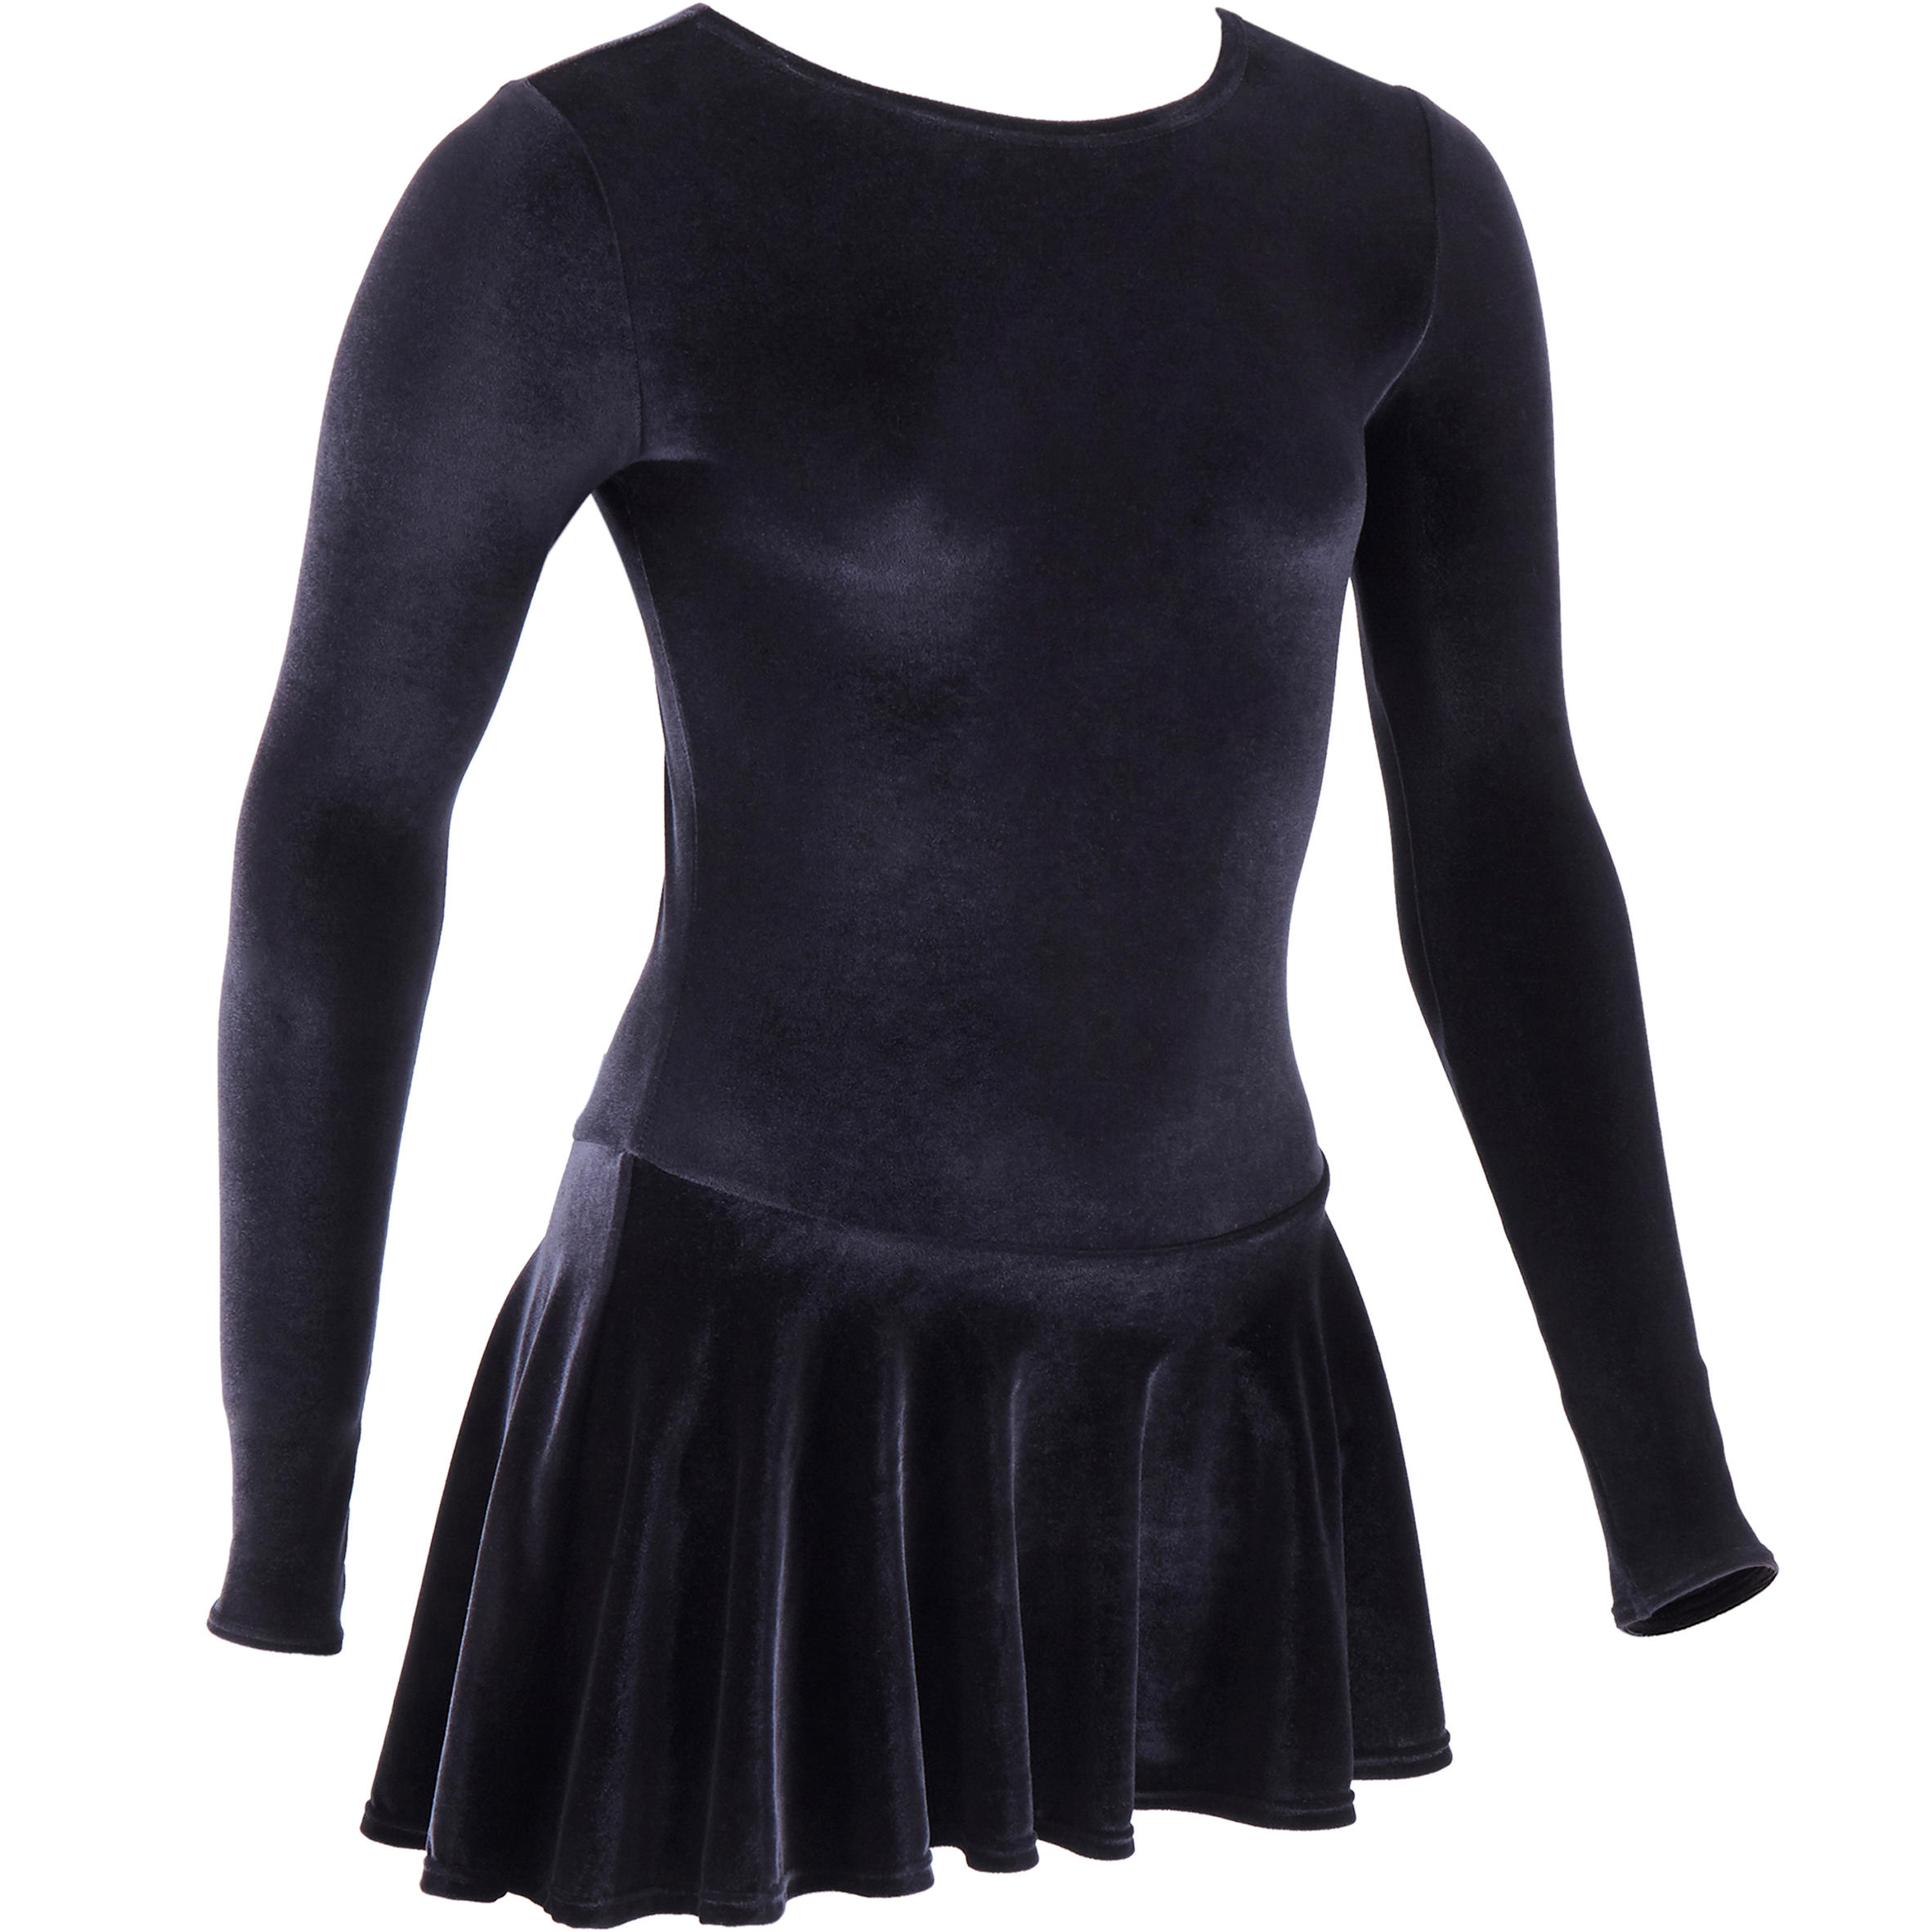 Junior Figure Skating Training Tunic - Black